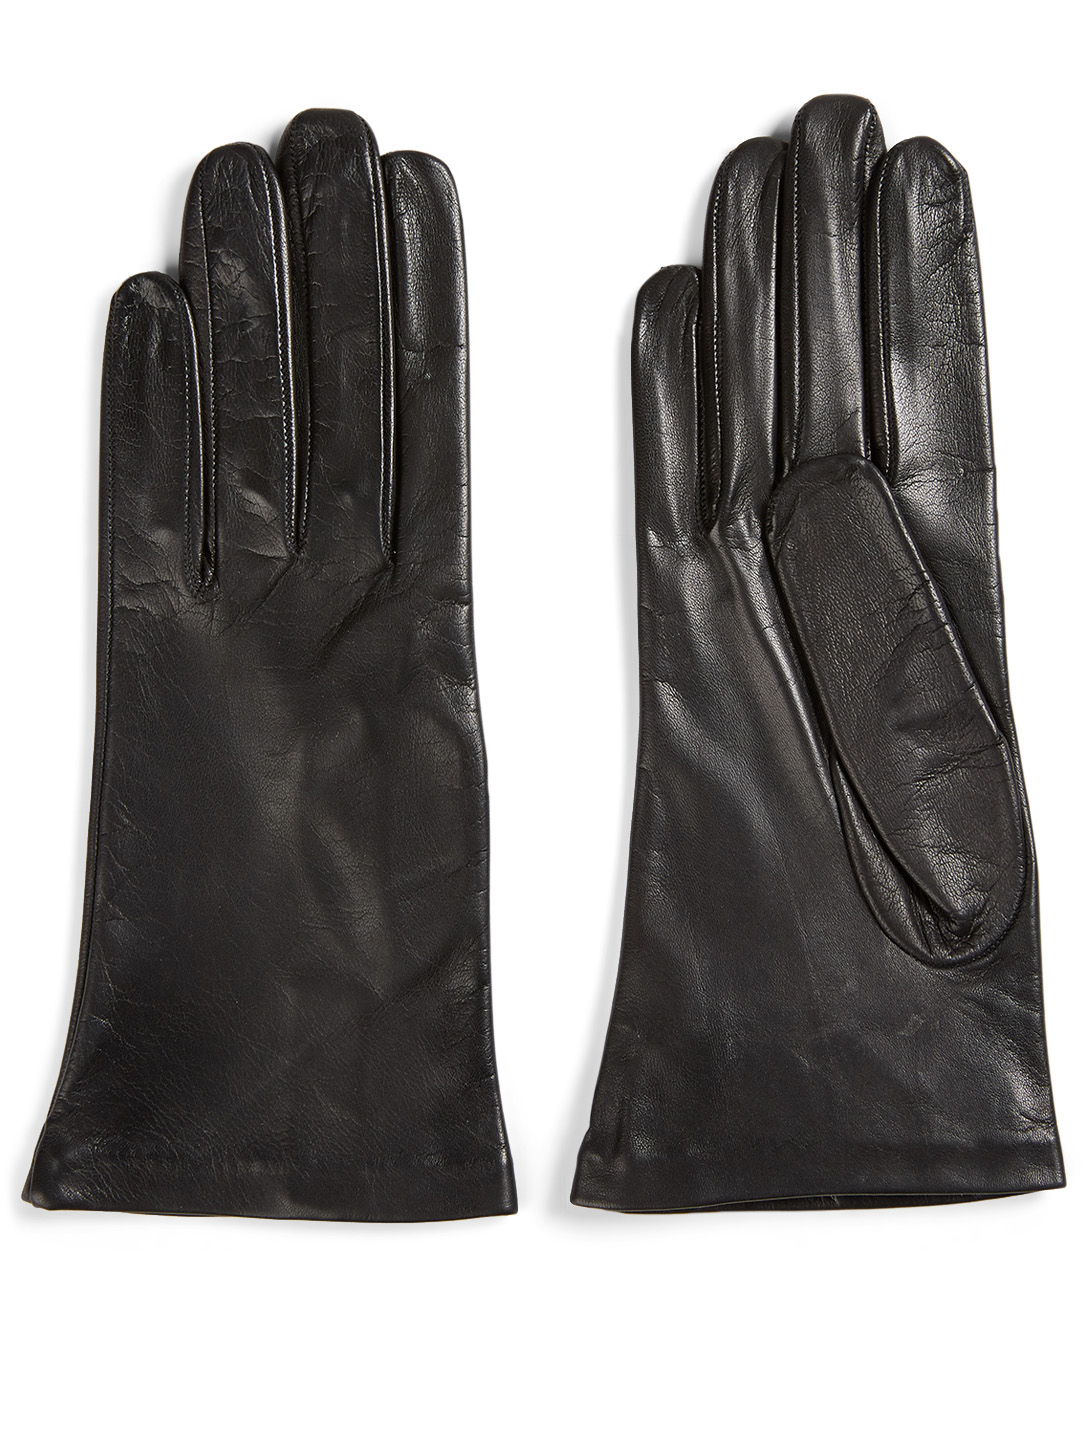 FLORIANA GLOVES Short Silk-Lined Leather Gloves Women's Black